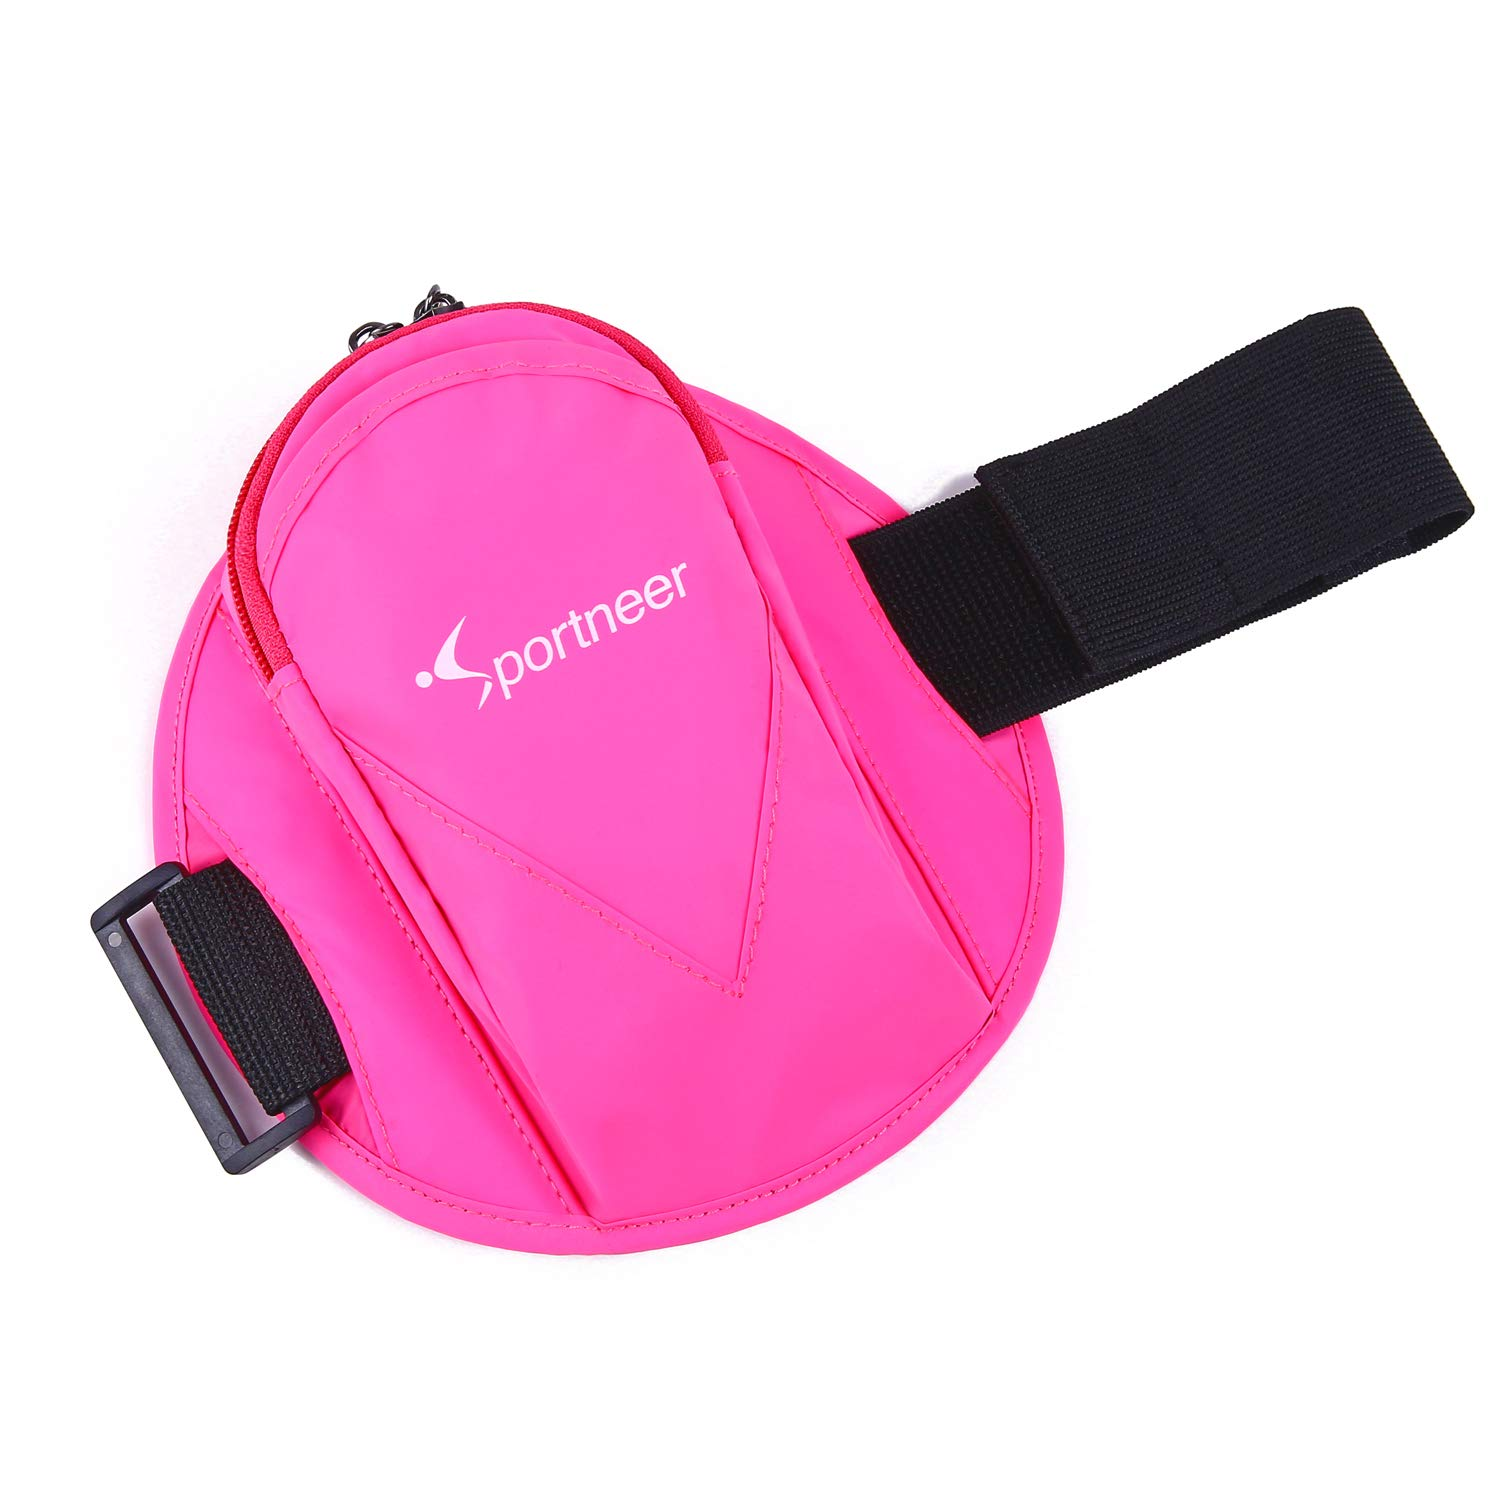 Sportneer Armband for Running Fitness Gym Outdoor Sports-Waterproof, Reflective, Durable, Armband for Phone Under 6.5 Inch,Designed for Comfort!!! product image